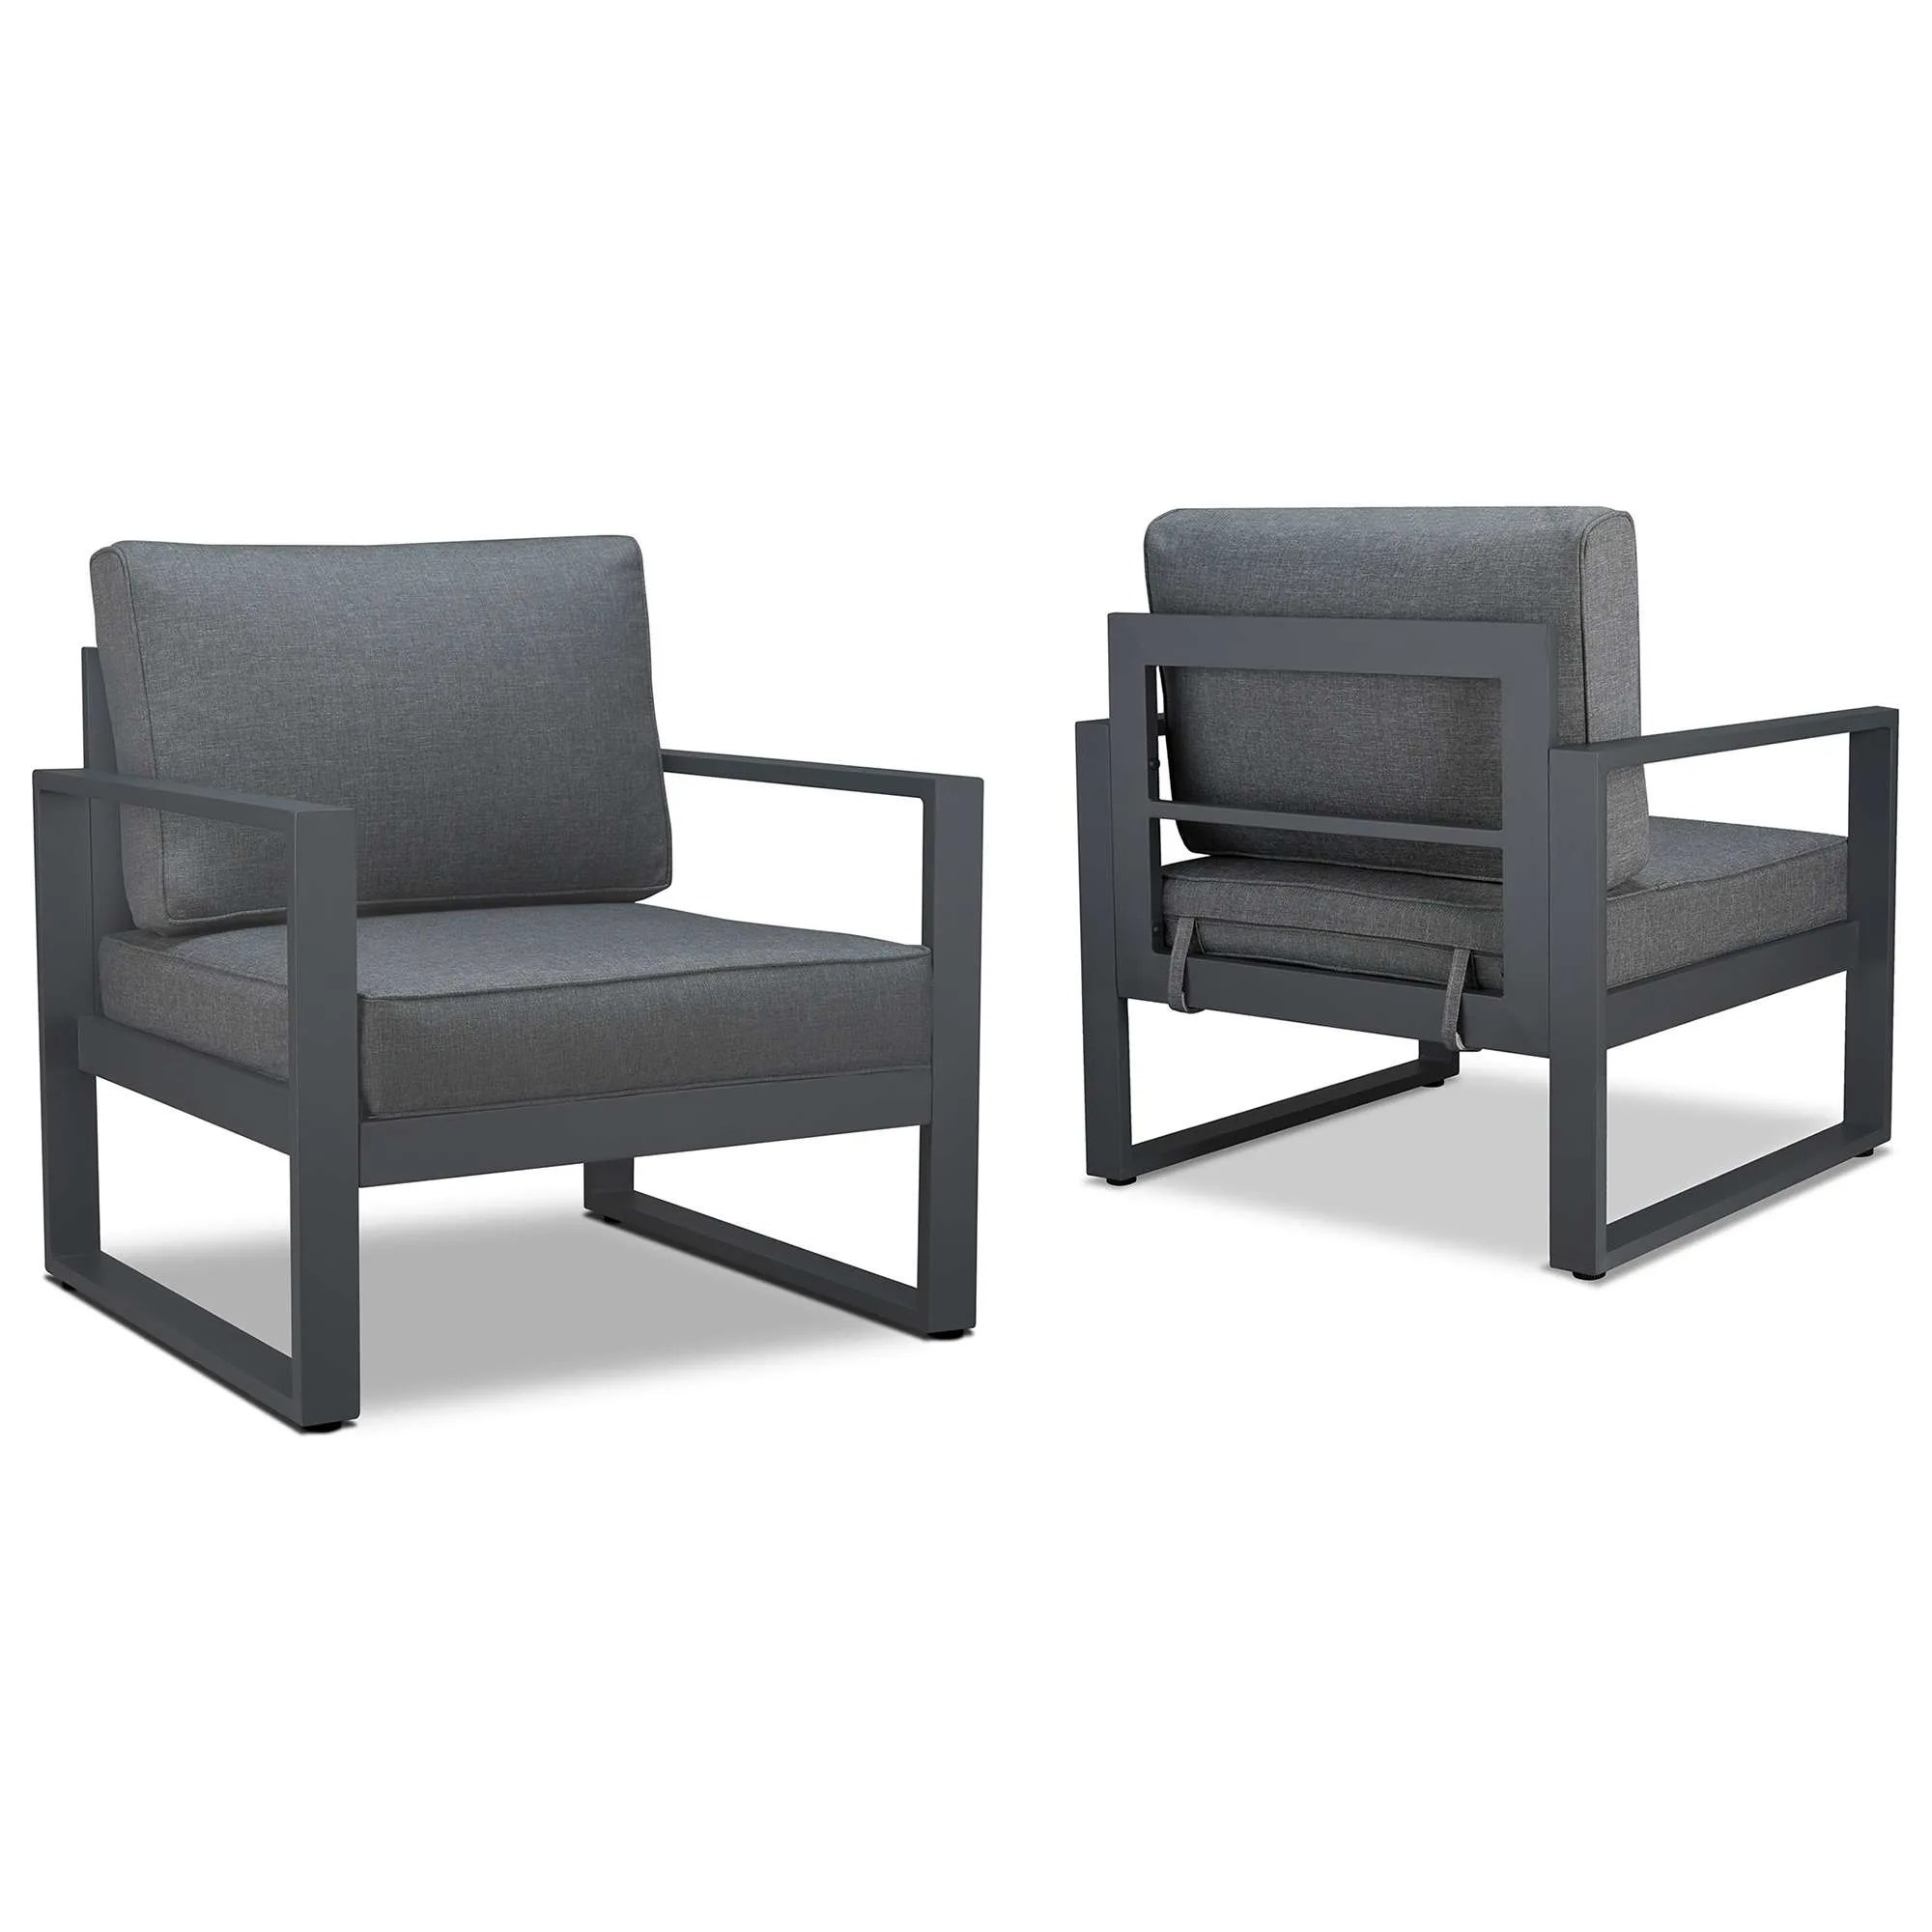 Outdoor Chair Set Realflame 9611 Gry